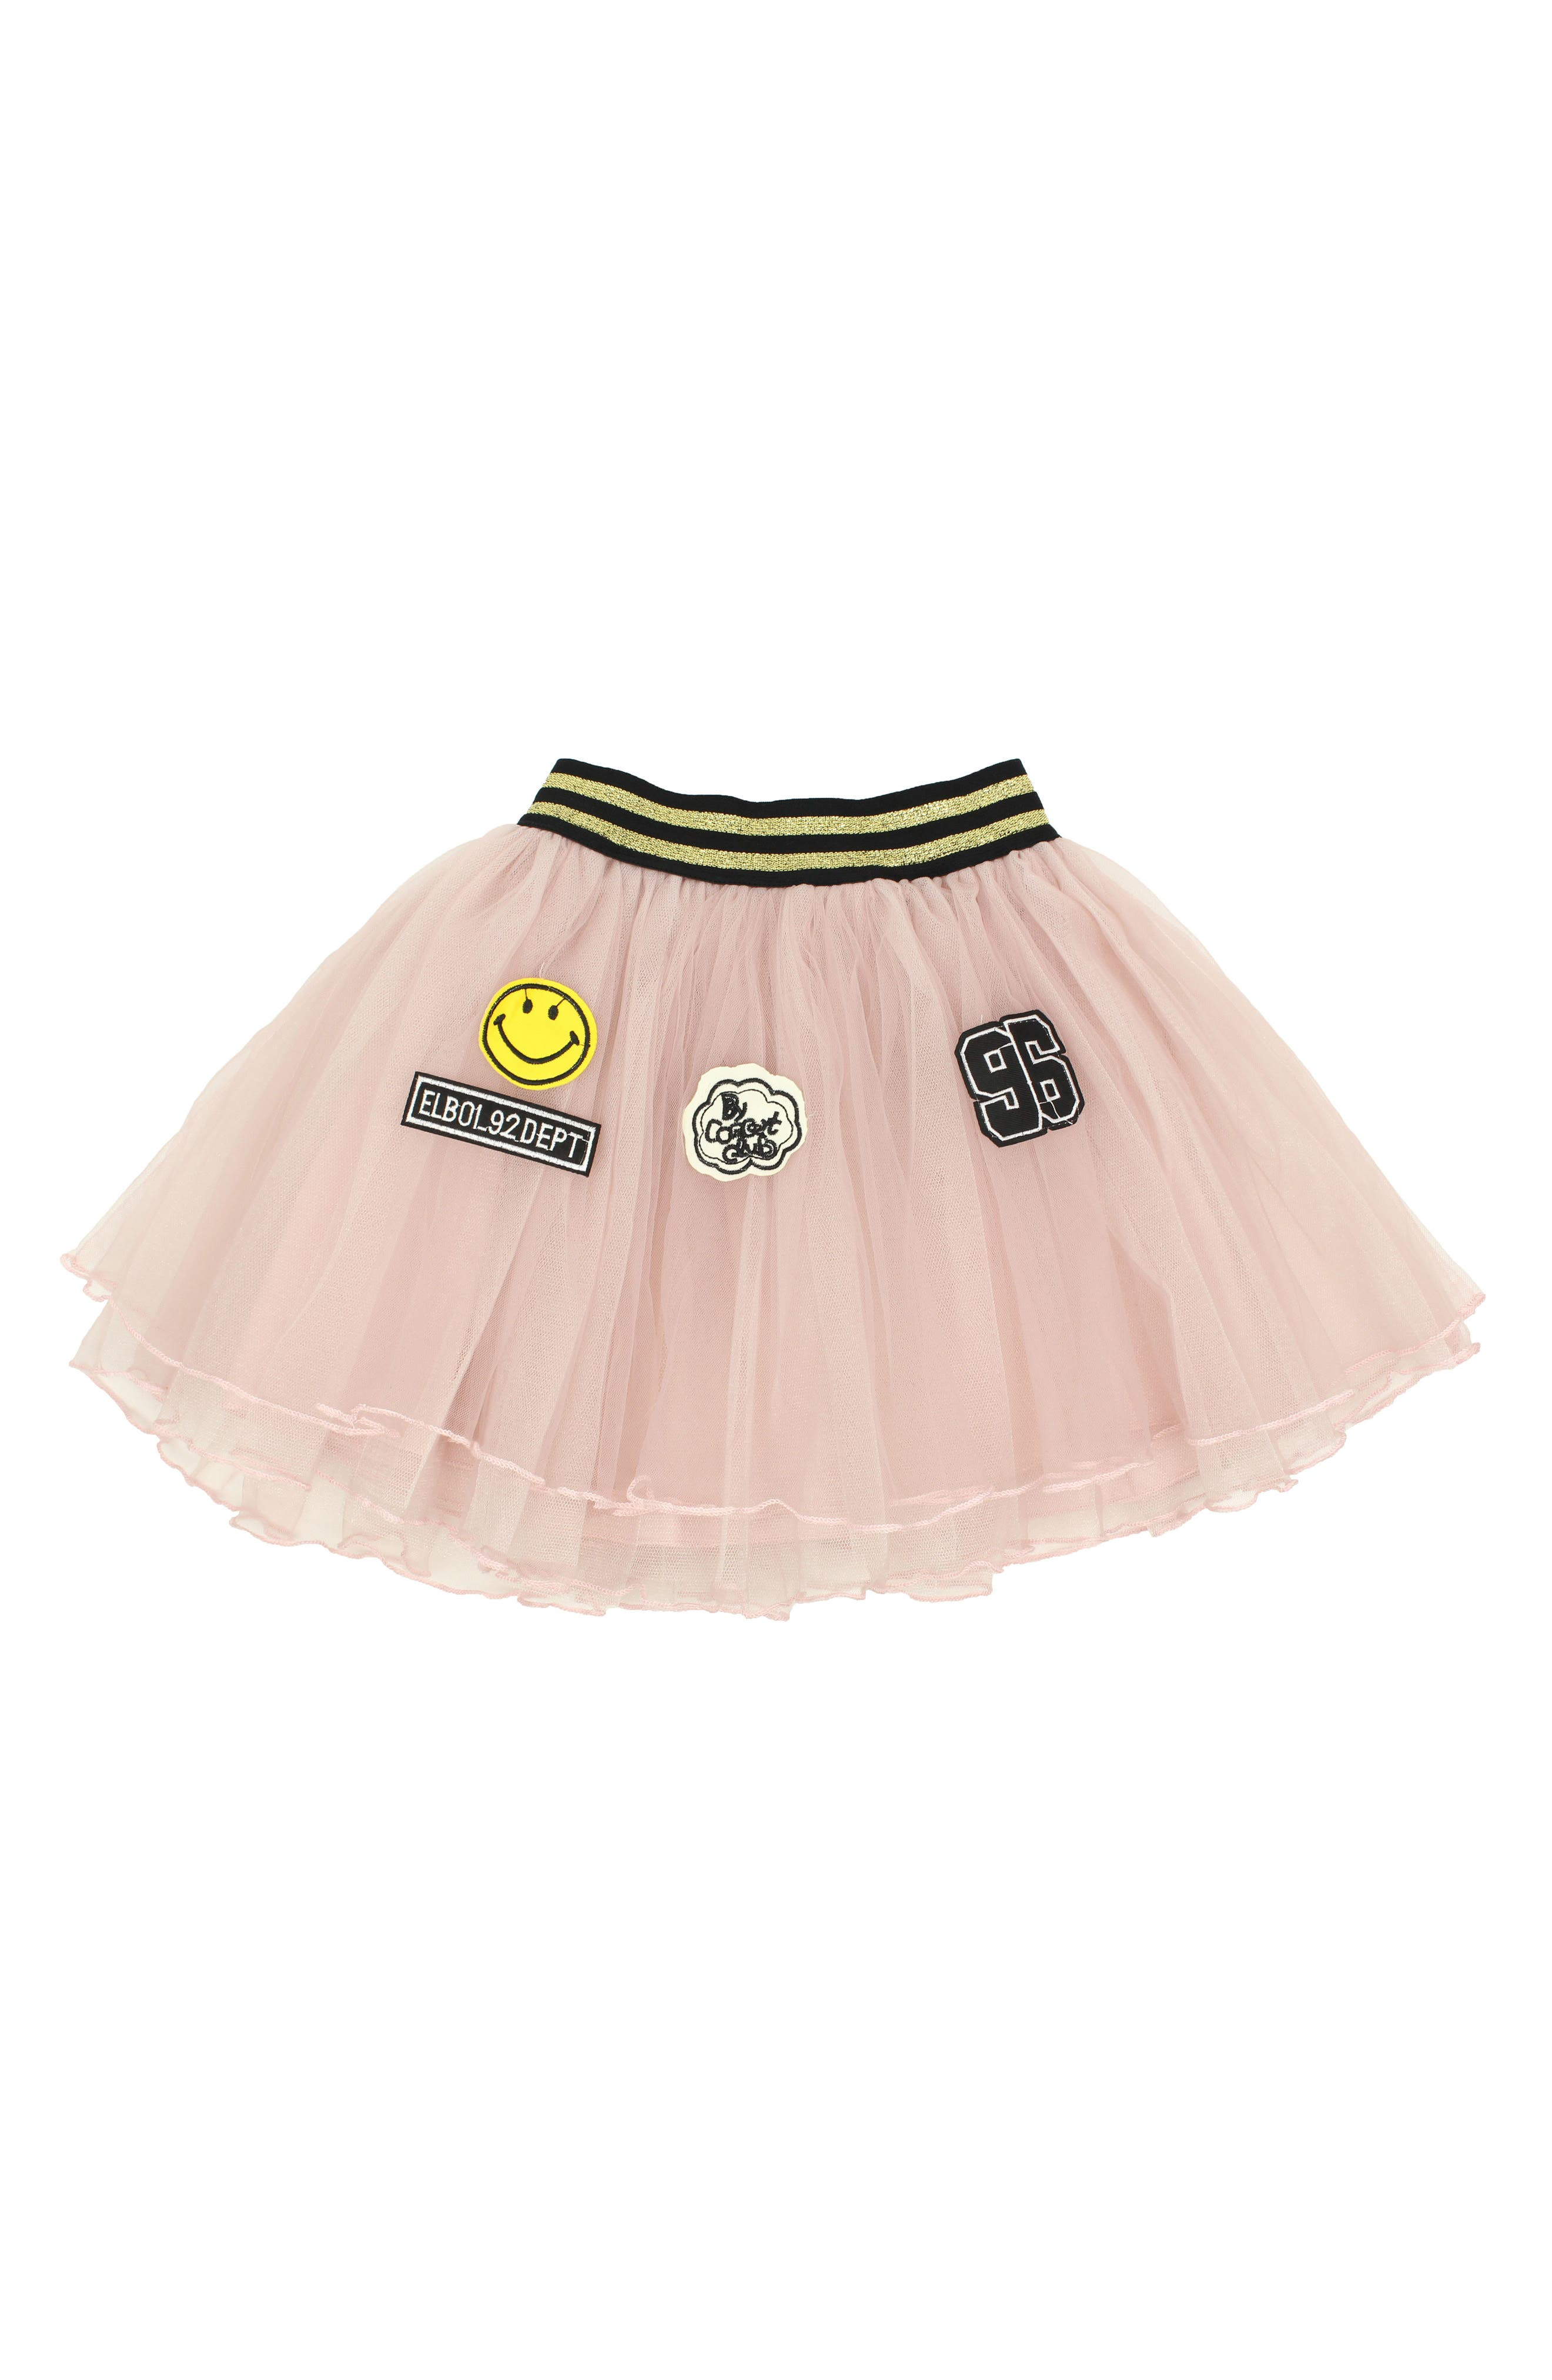 POPATU, Varsity Patches Tulle Skirt, Main thumbnail 1, color, PINK